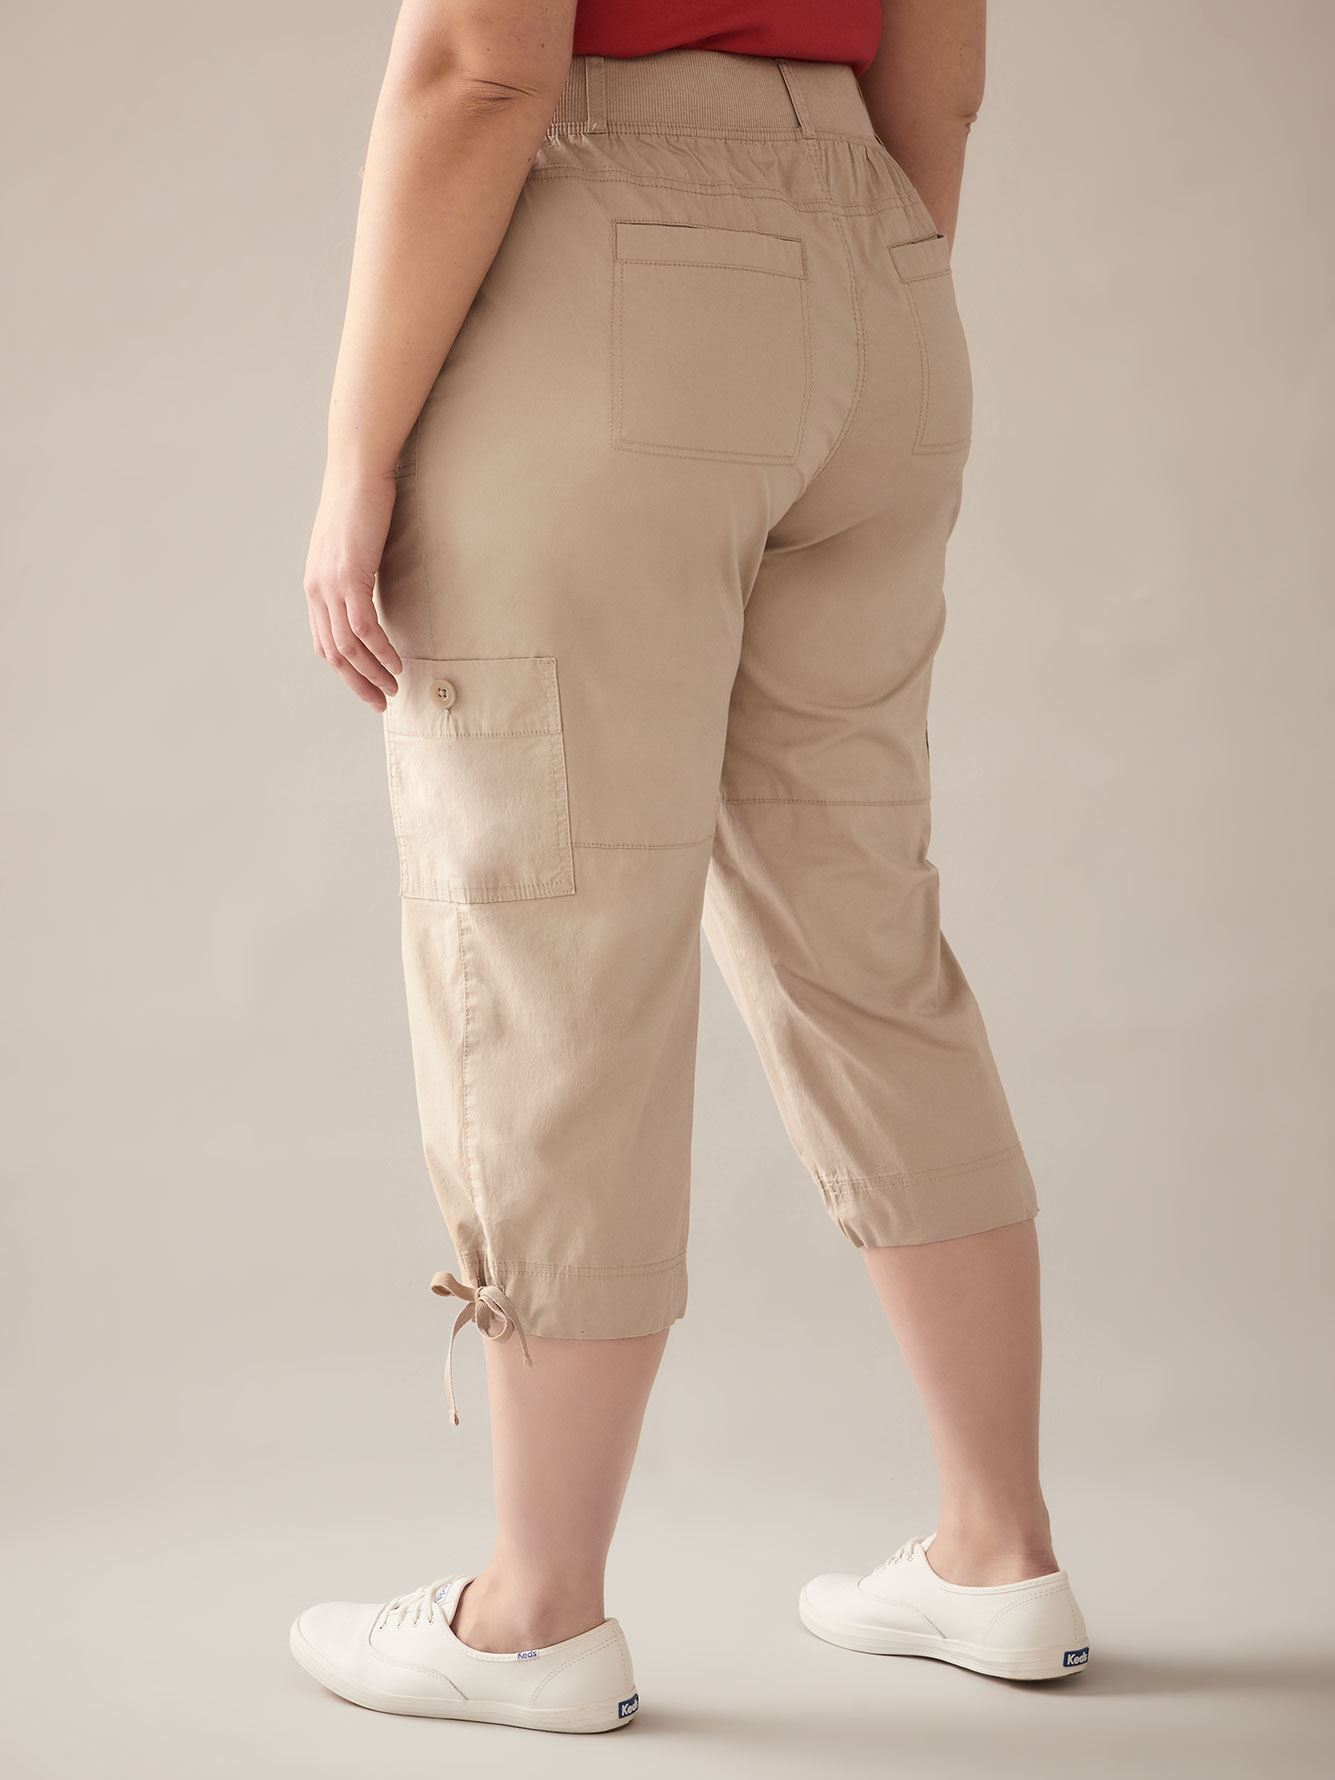 Pantalon capri cargo - In Every Story